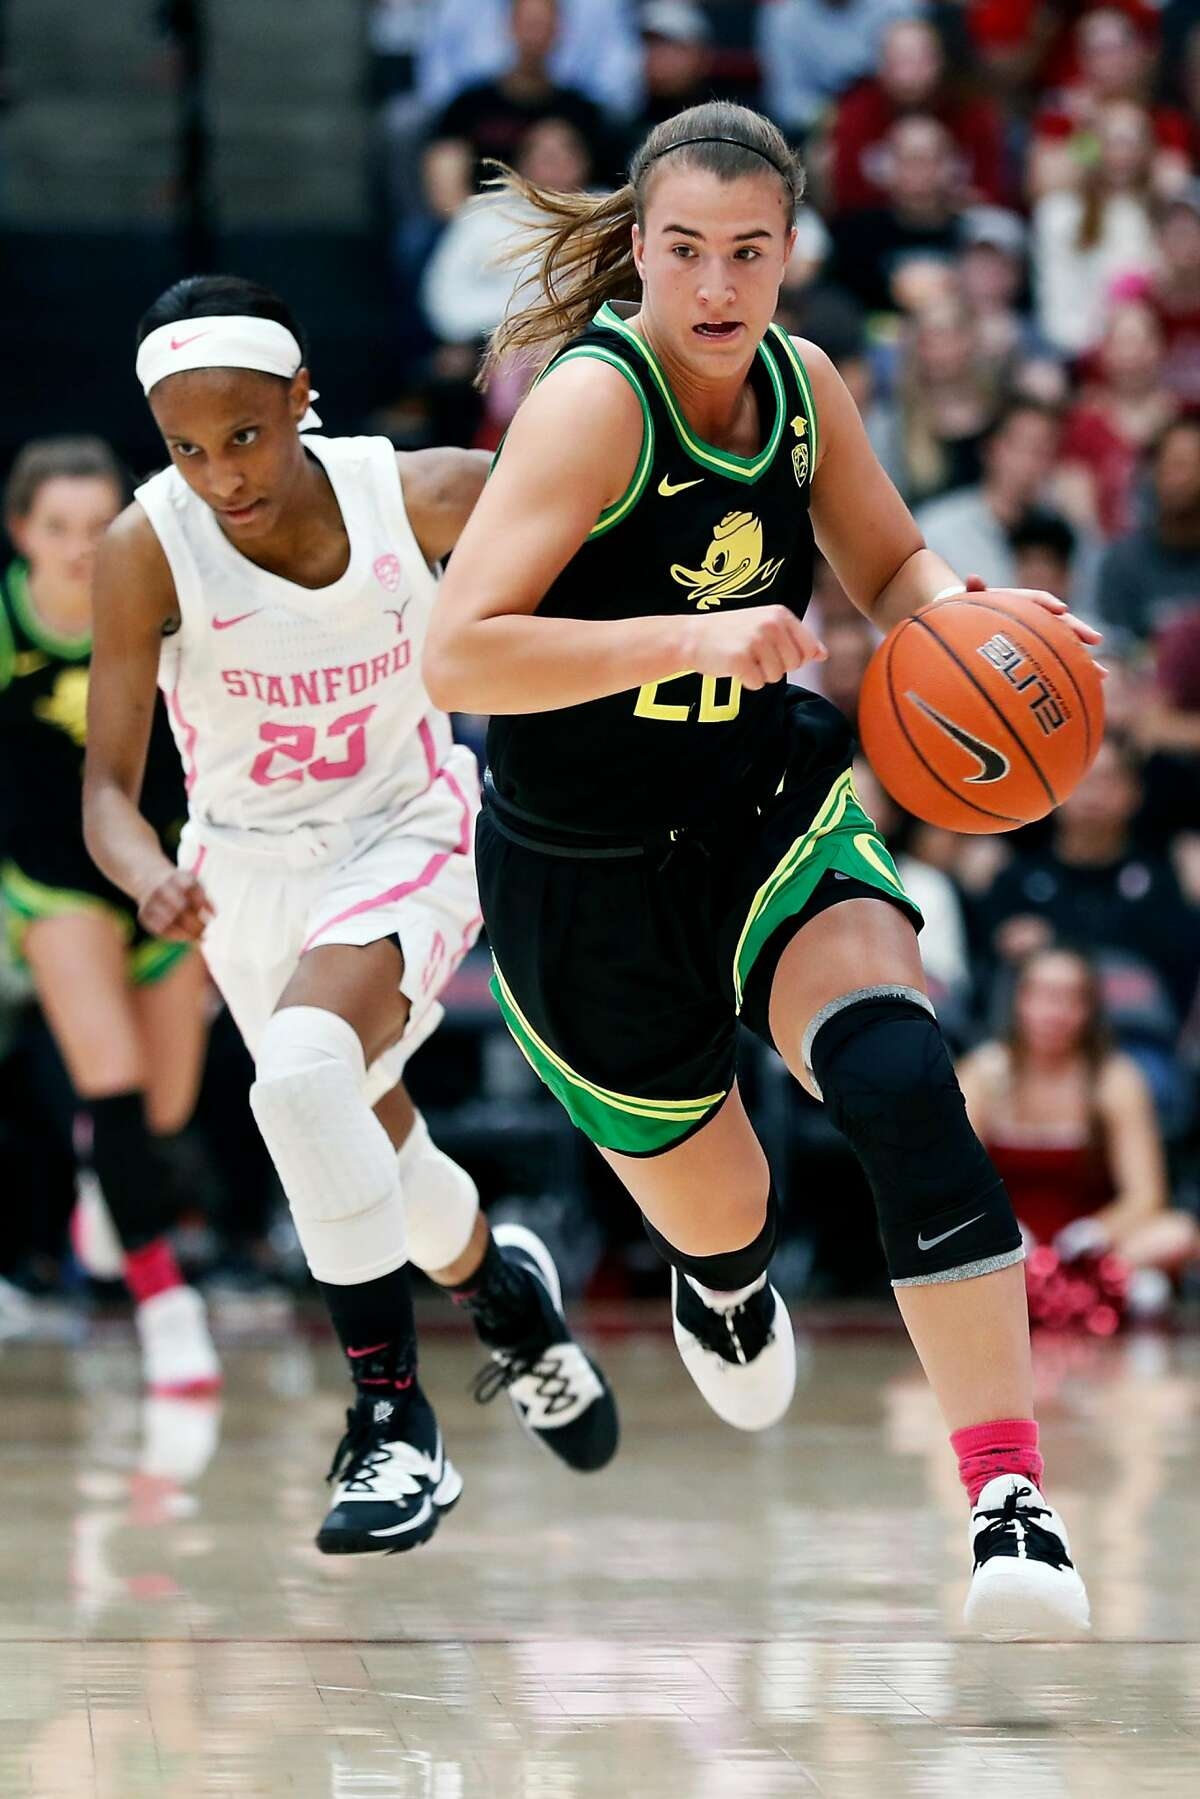 """Stanford's Kiana Williams trails Oregon""""s Sabrina Ionescu up the court during Pac 12 women's basketball game at Maples Pavilion in Stanford, Calif., on Monday, February 24, 2020."""